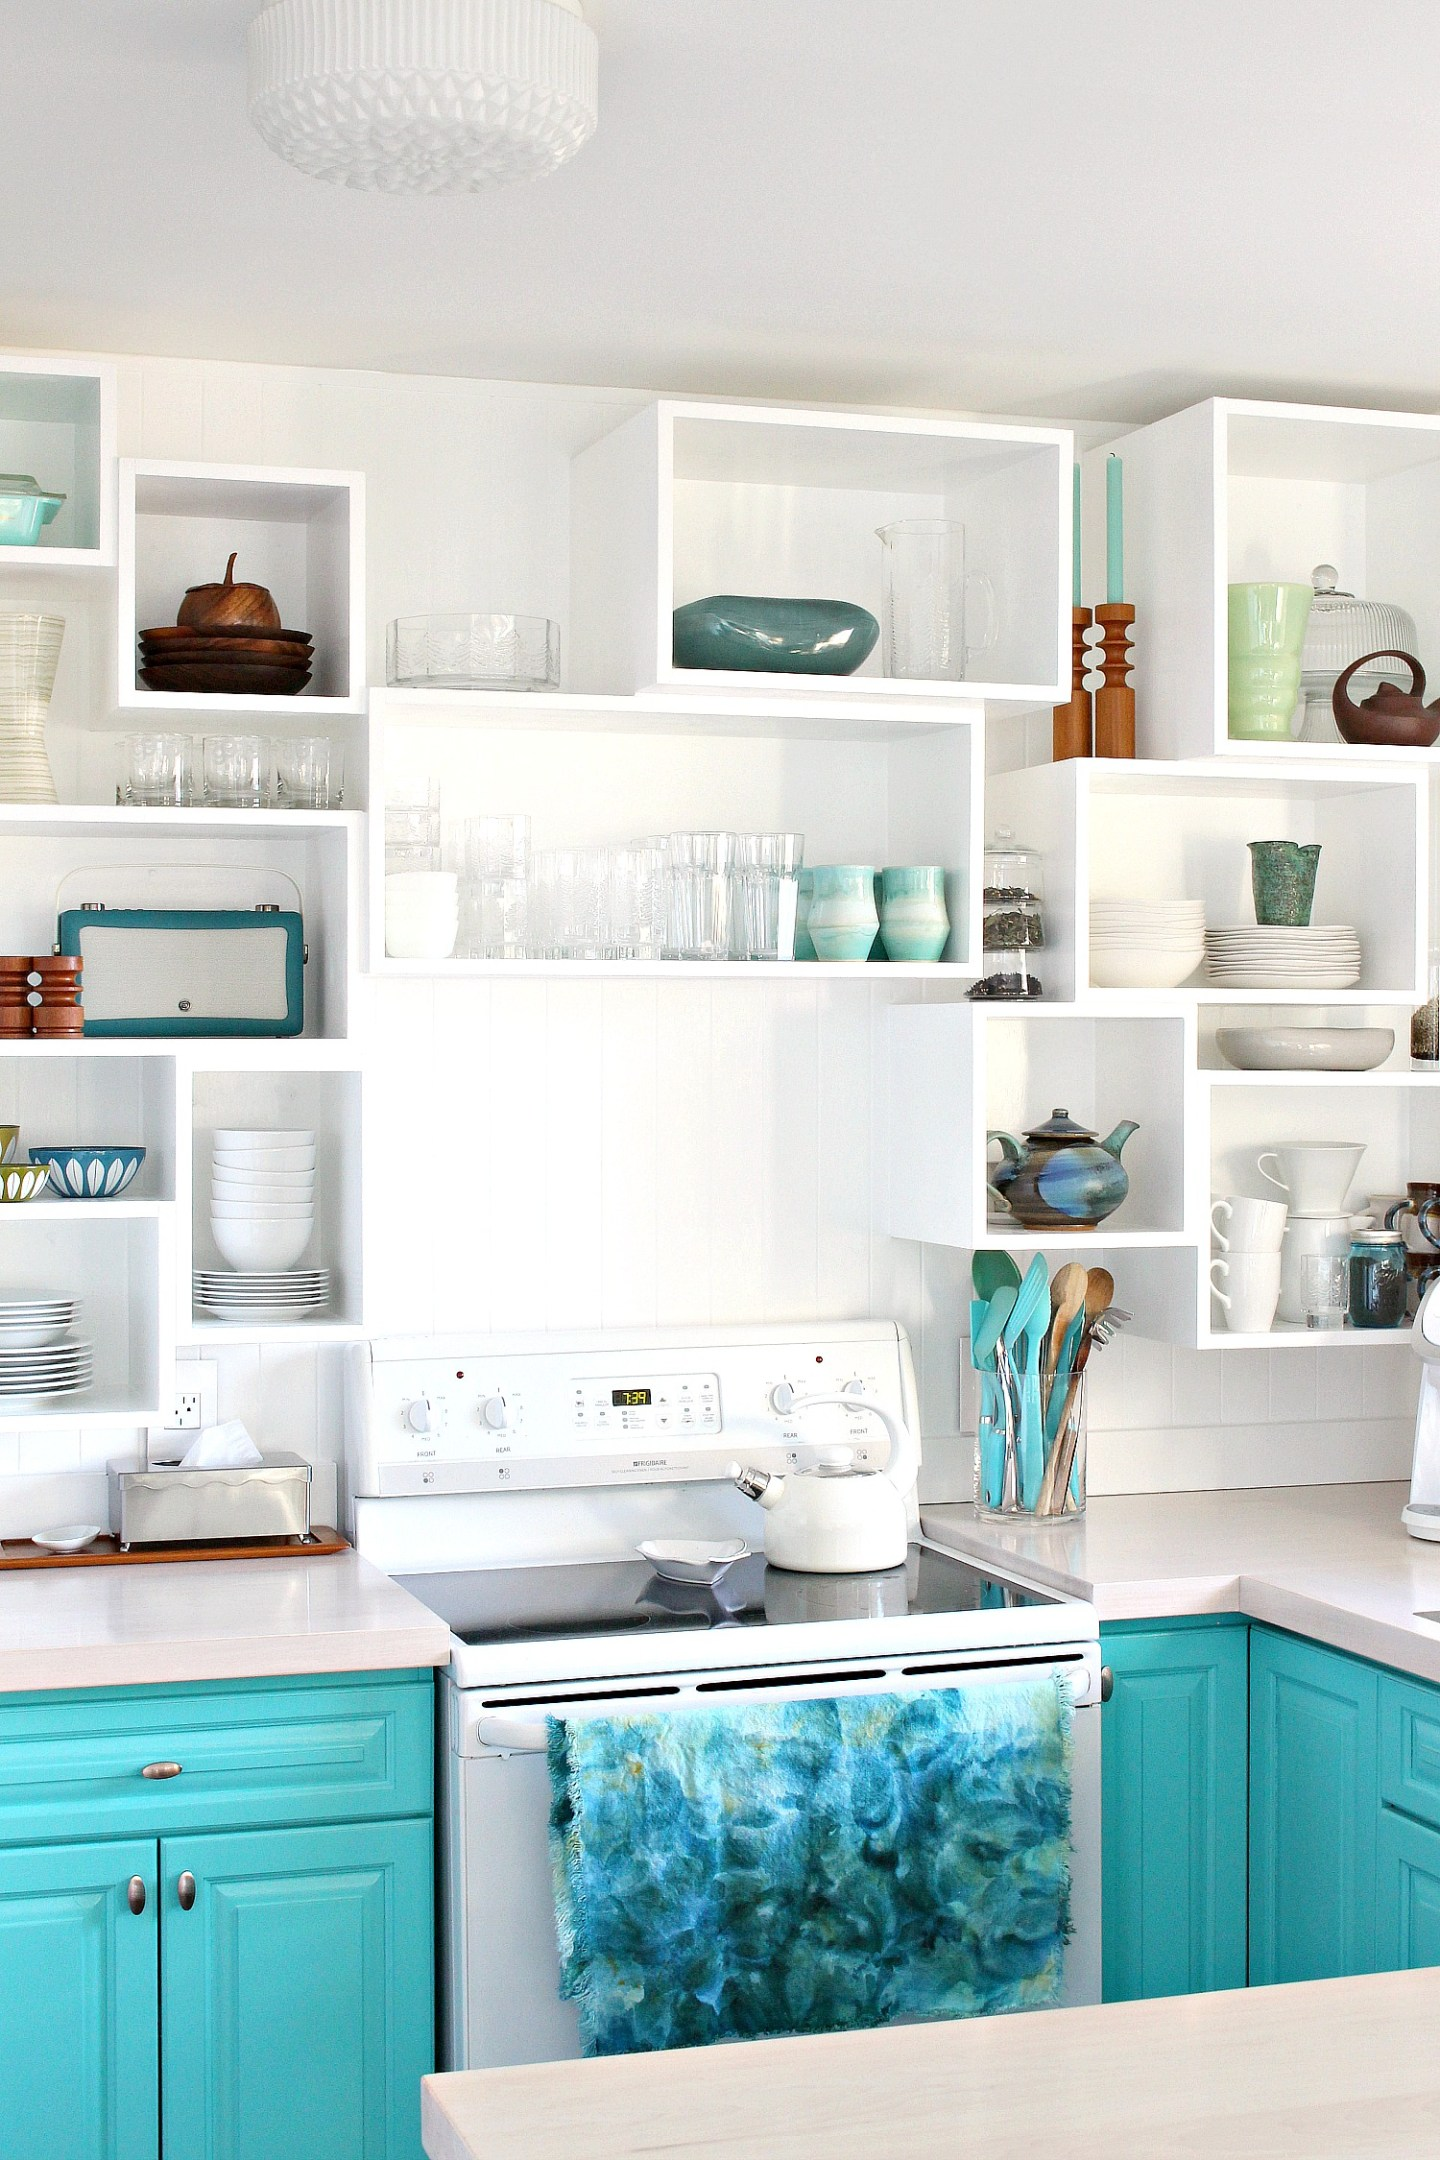 How to Build Wall Cubbies   Fresh Take on Kitchen Open Shelving #colorfulkitchen #turquoise #vintagestyle #vintagedecor